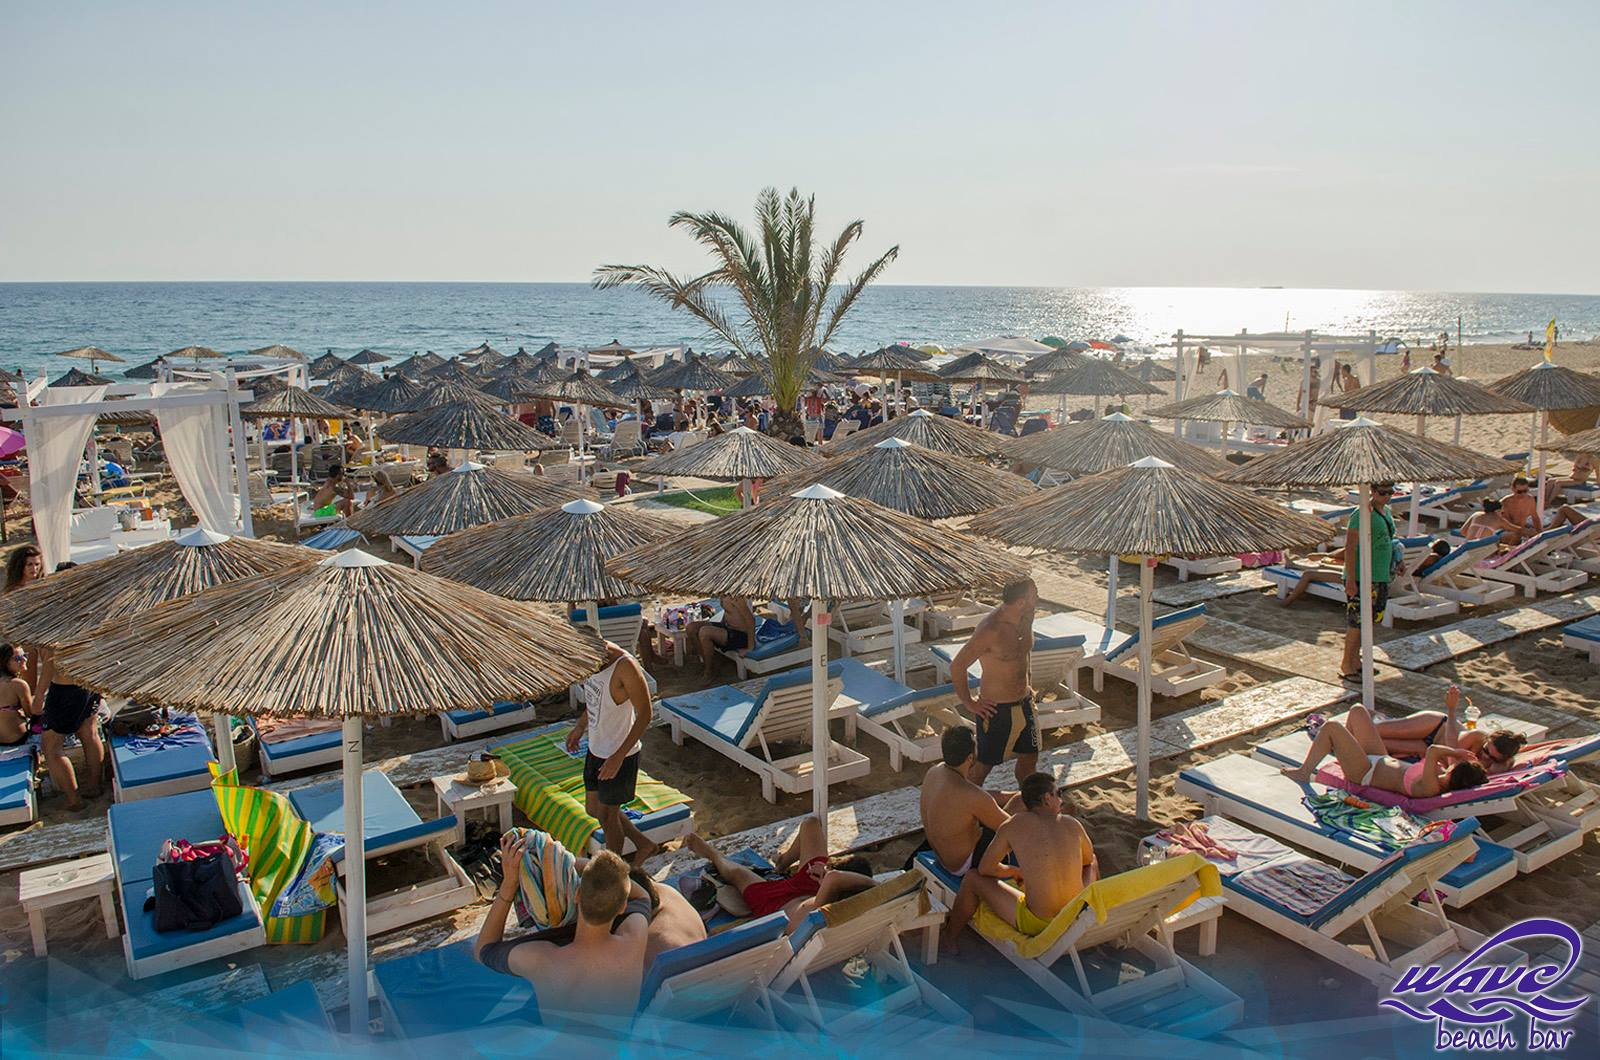 Corfu Beach Bars -  - Wave Beach Bar